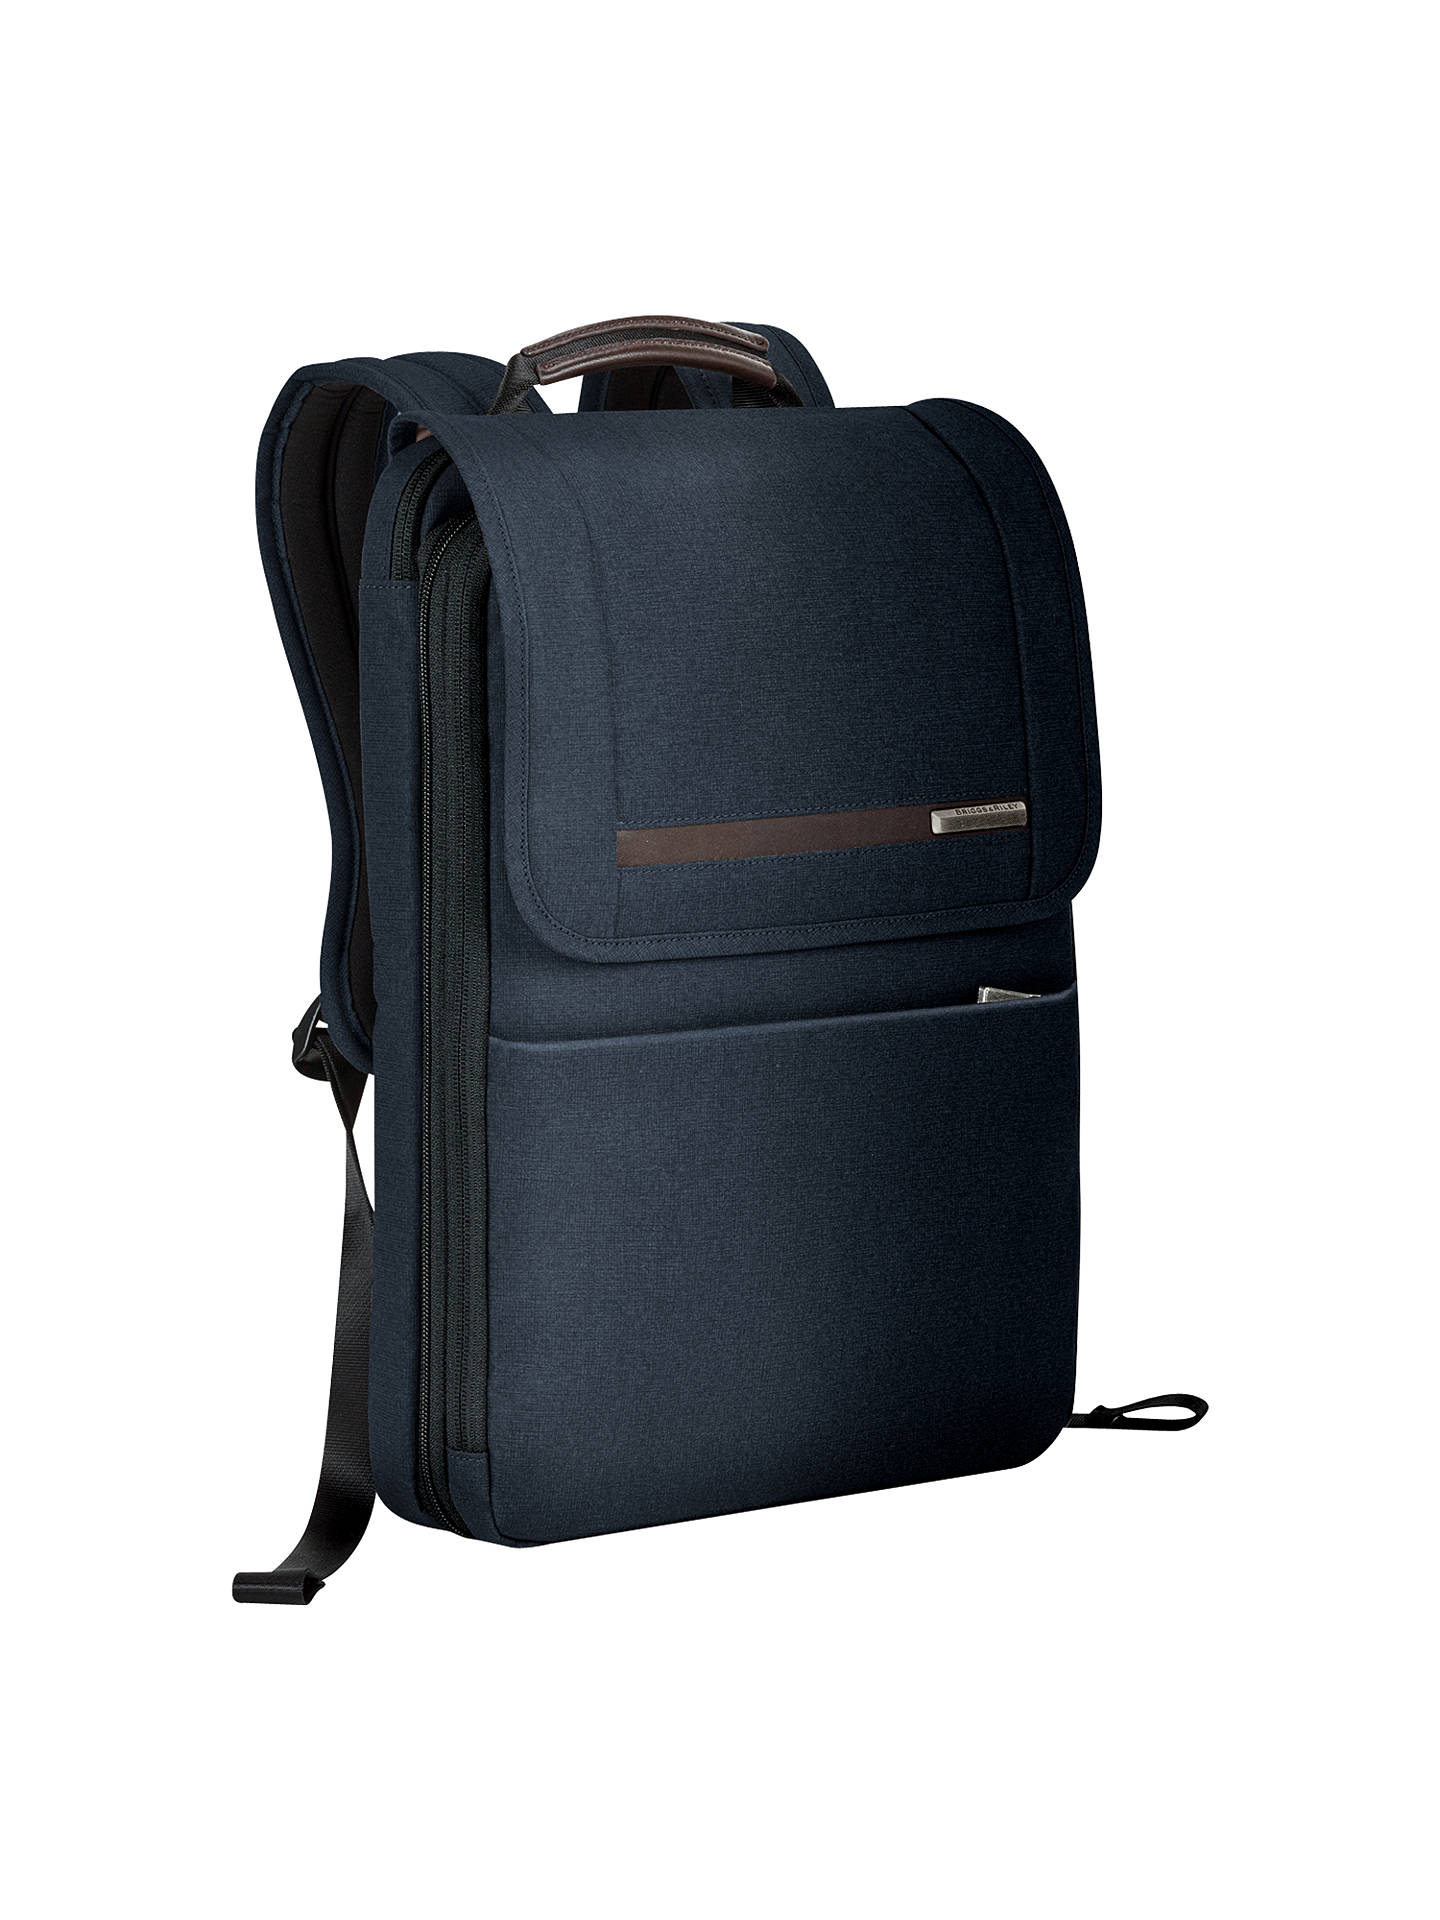 Buy Briggs & Riley Kinzie Flapover Expandable Backpack, Navy Online at johnlewis.com